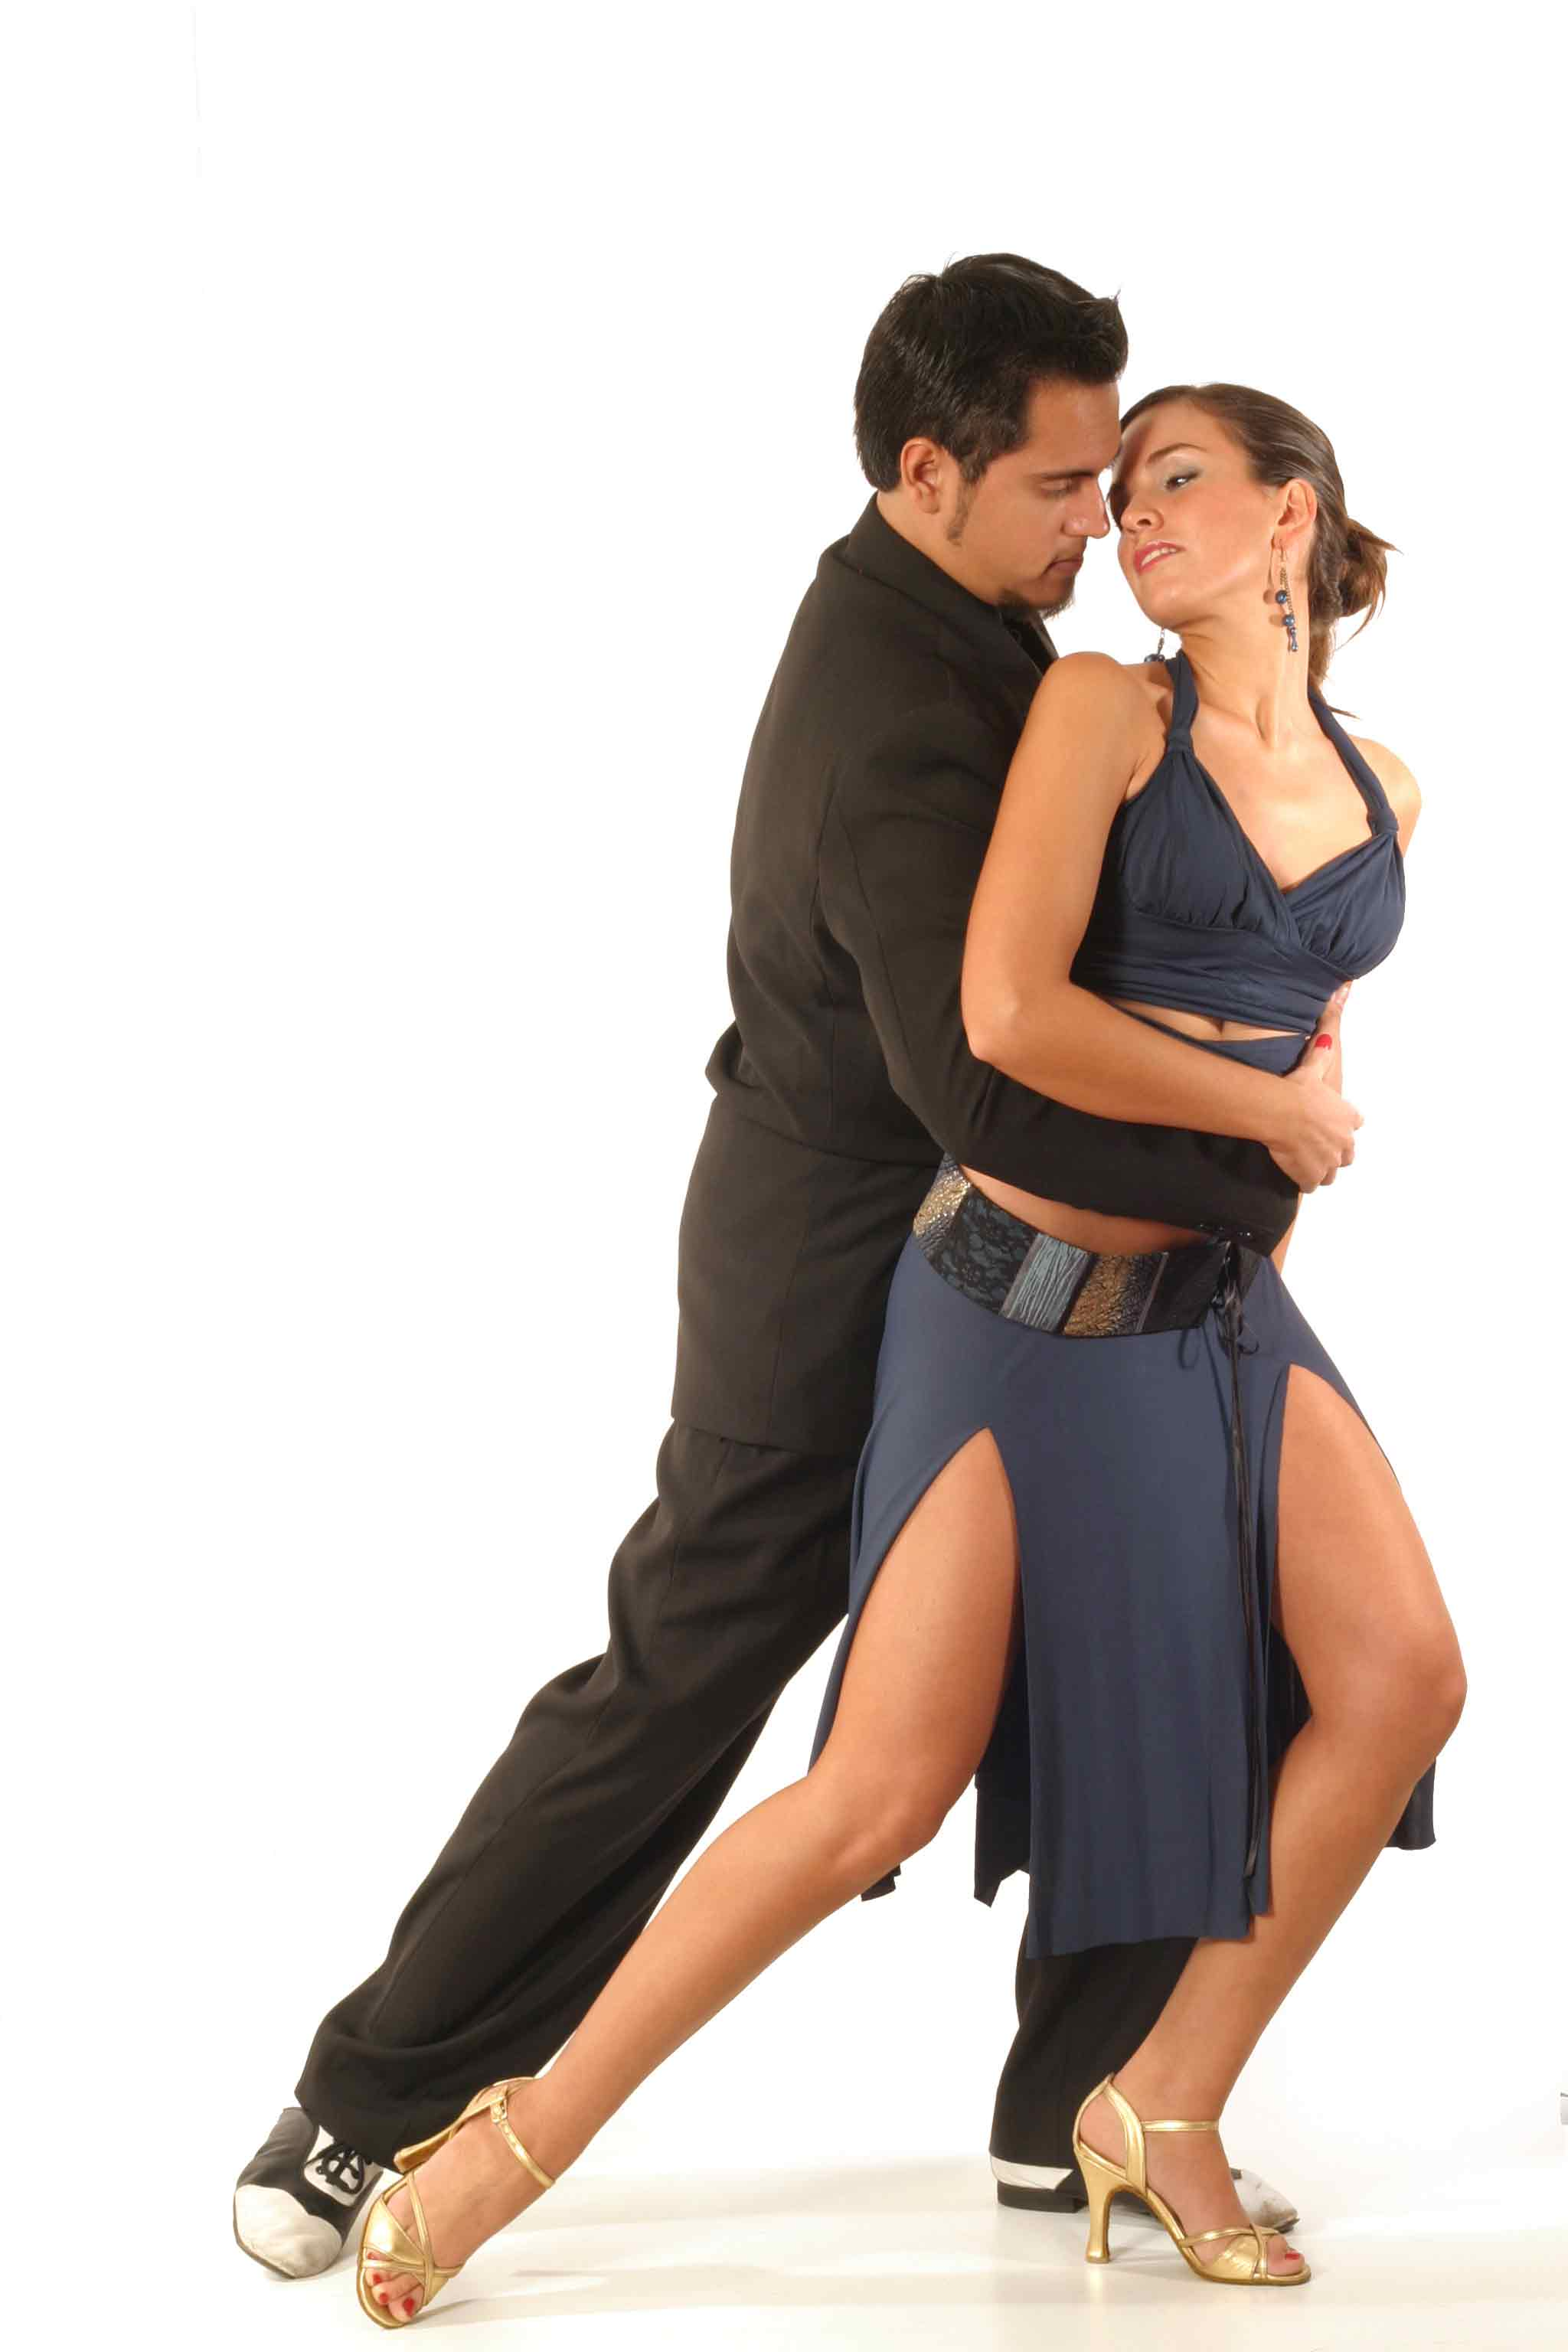 like each visit they will leave you with a wonderful tango experience